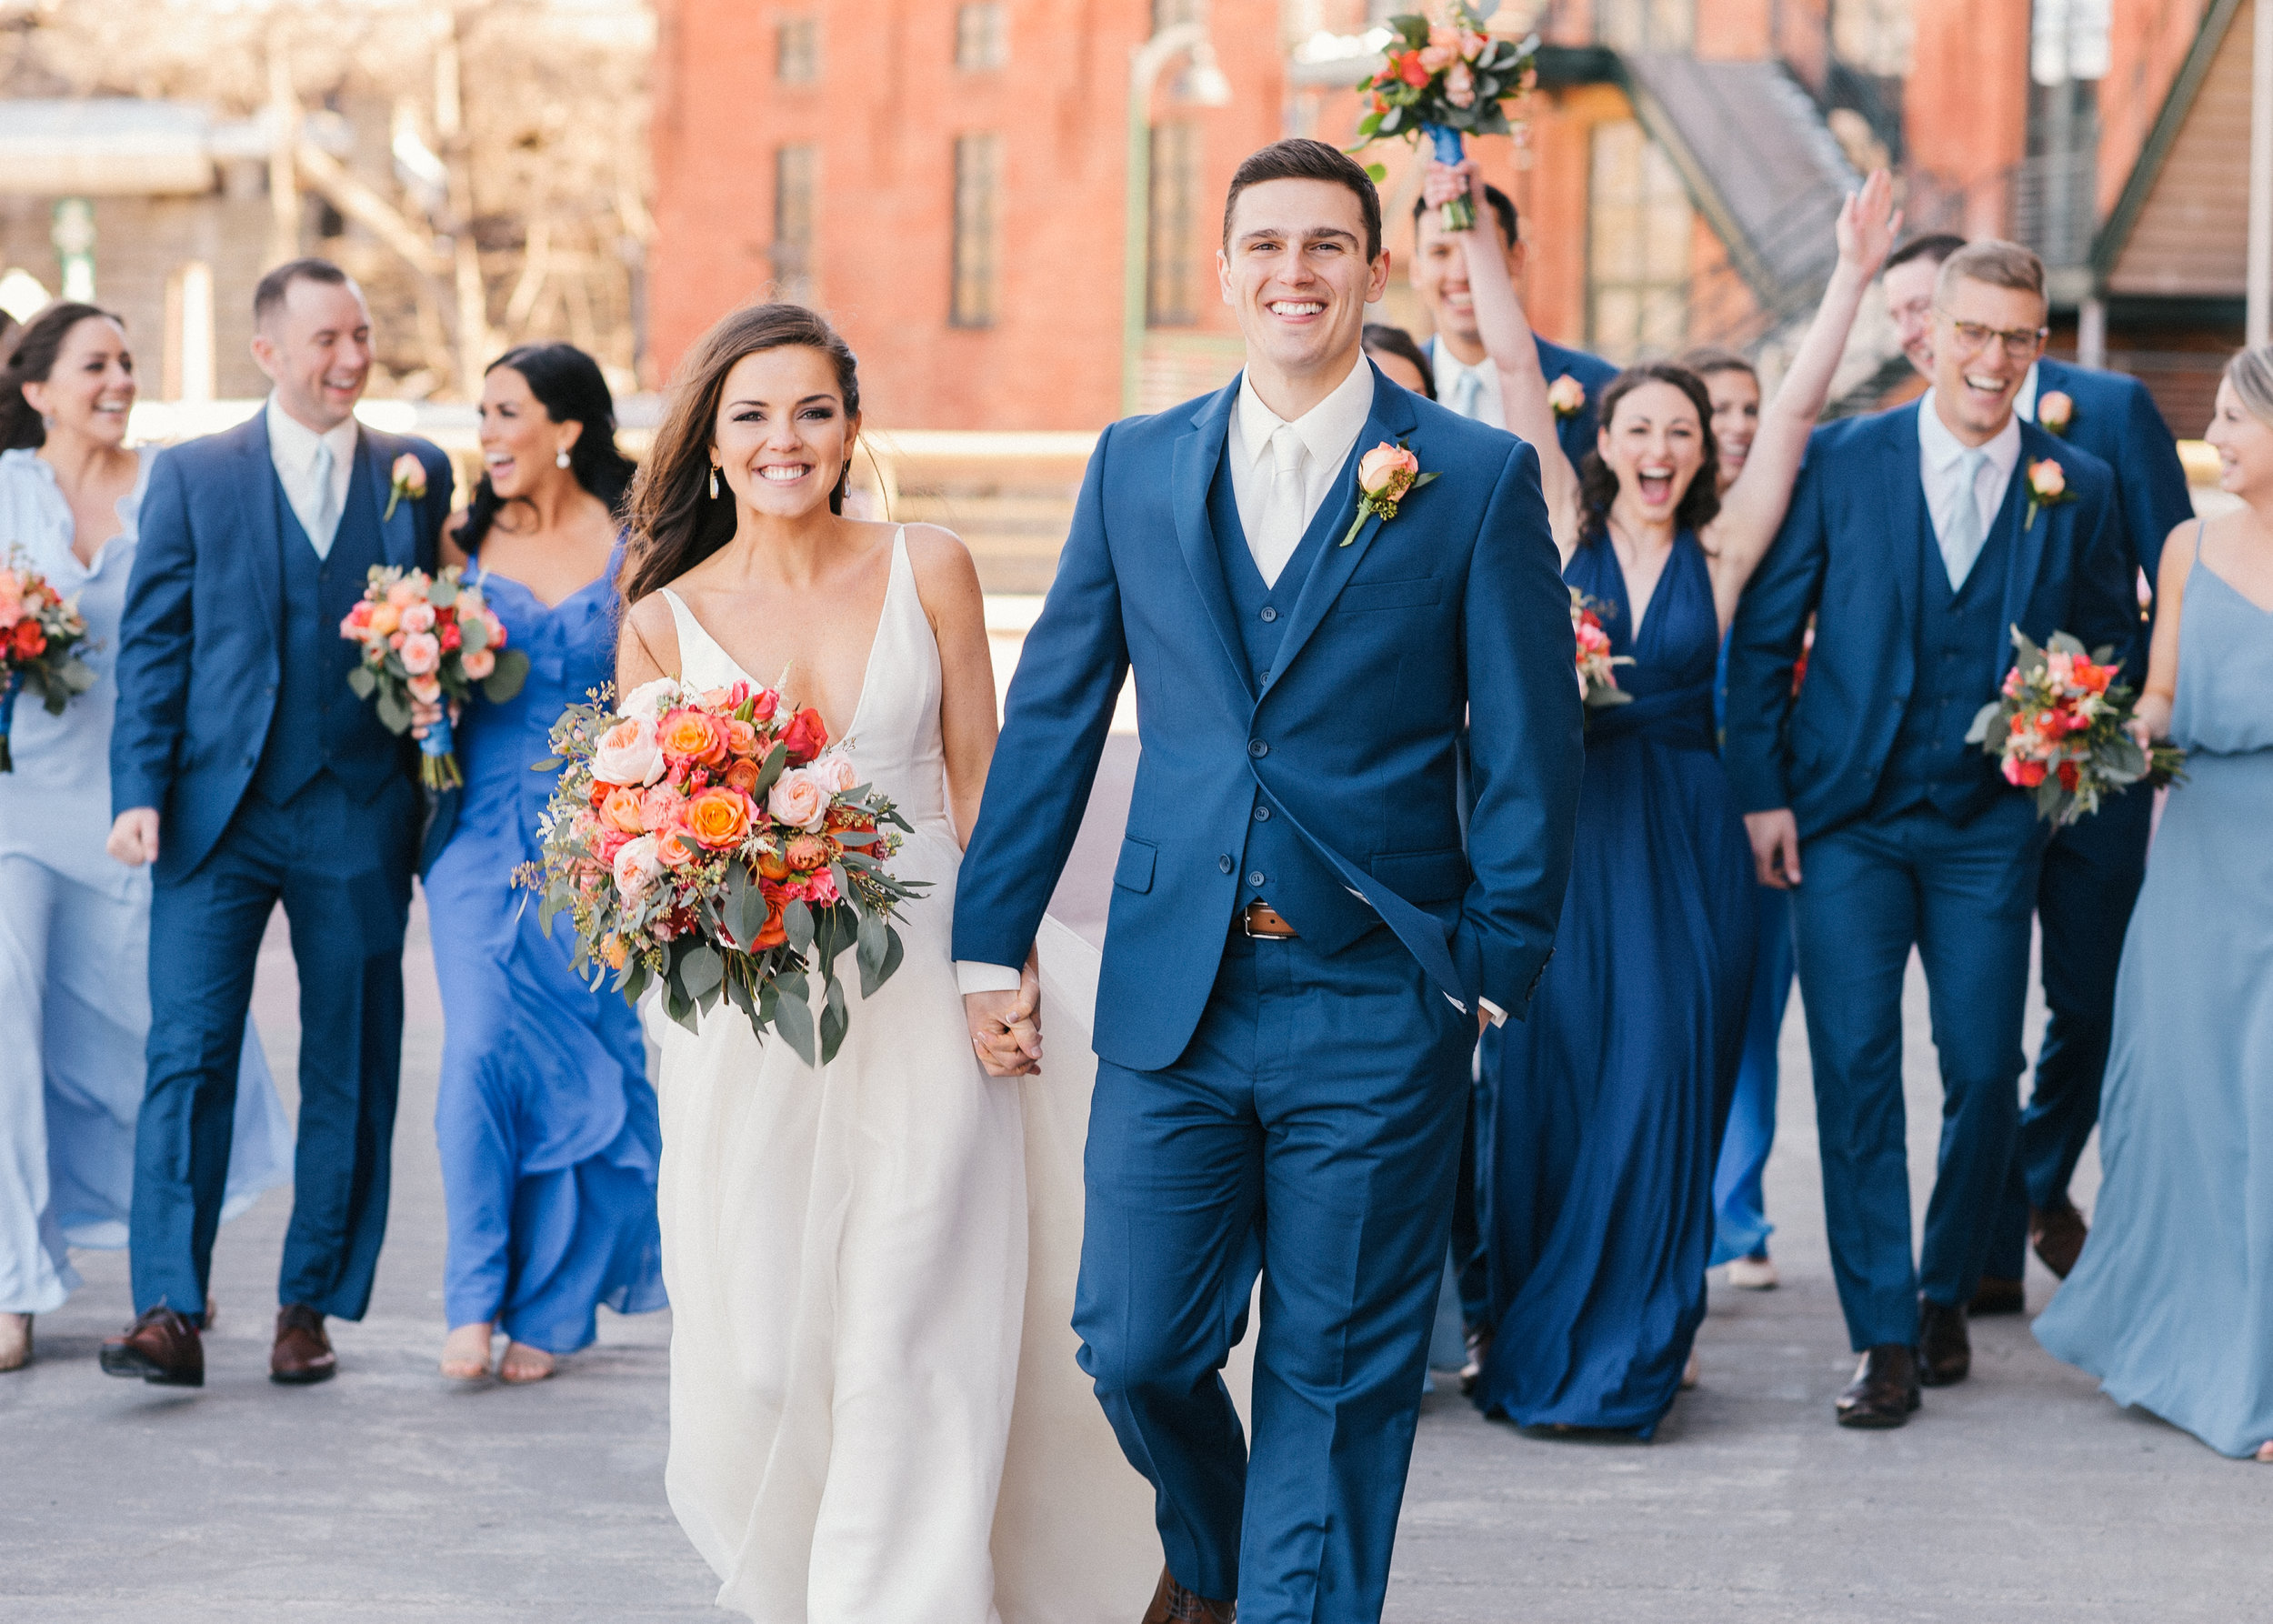 OUR WEDDING! - You can see looking through my photographs that I'm a big fan of bold, bright colors, so that definitely came through on our wedding day!